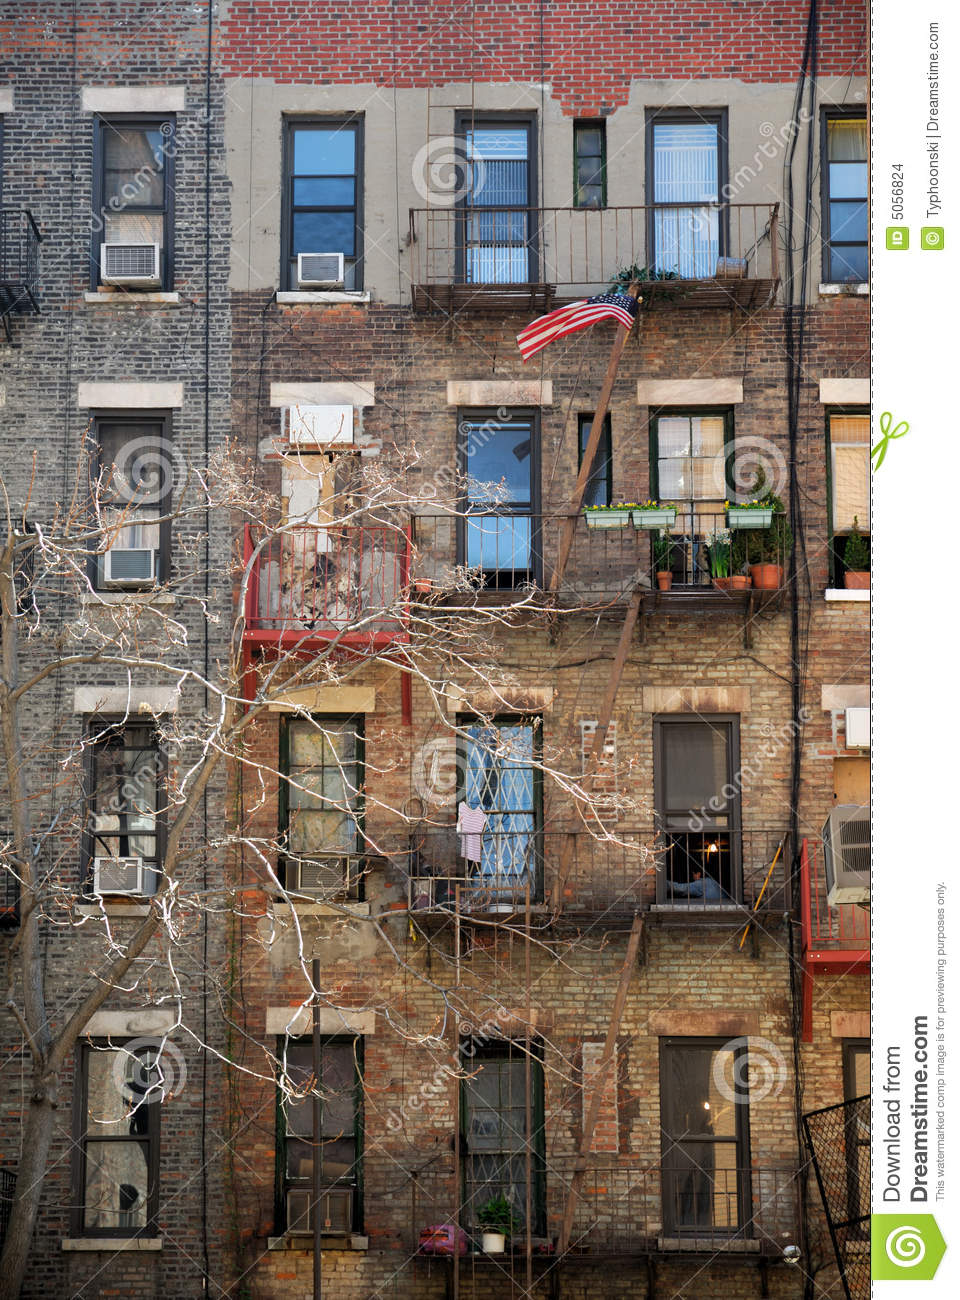 Apartment building in new york stock images image 5056824 for City apartment building